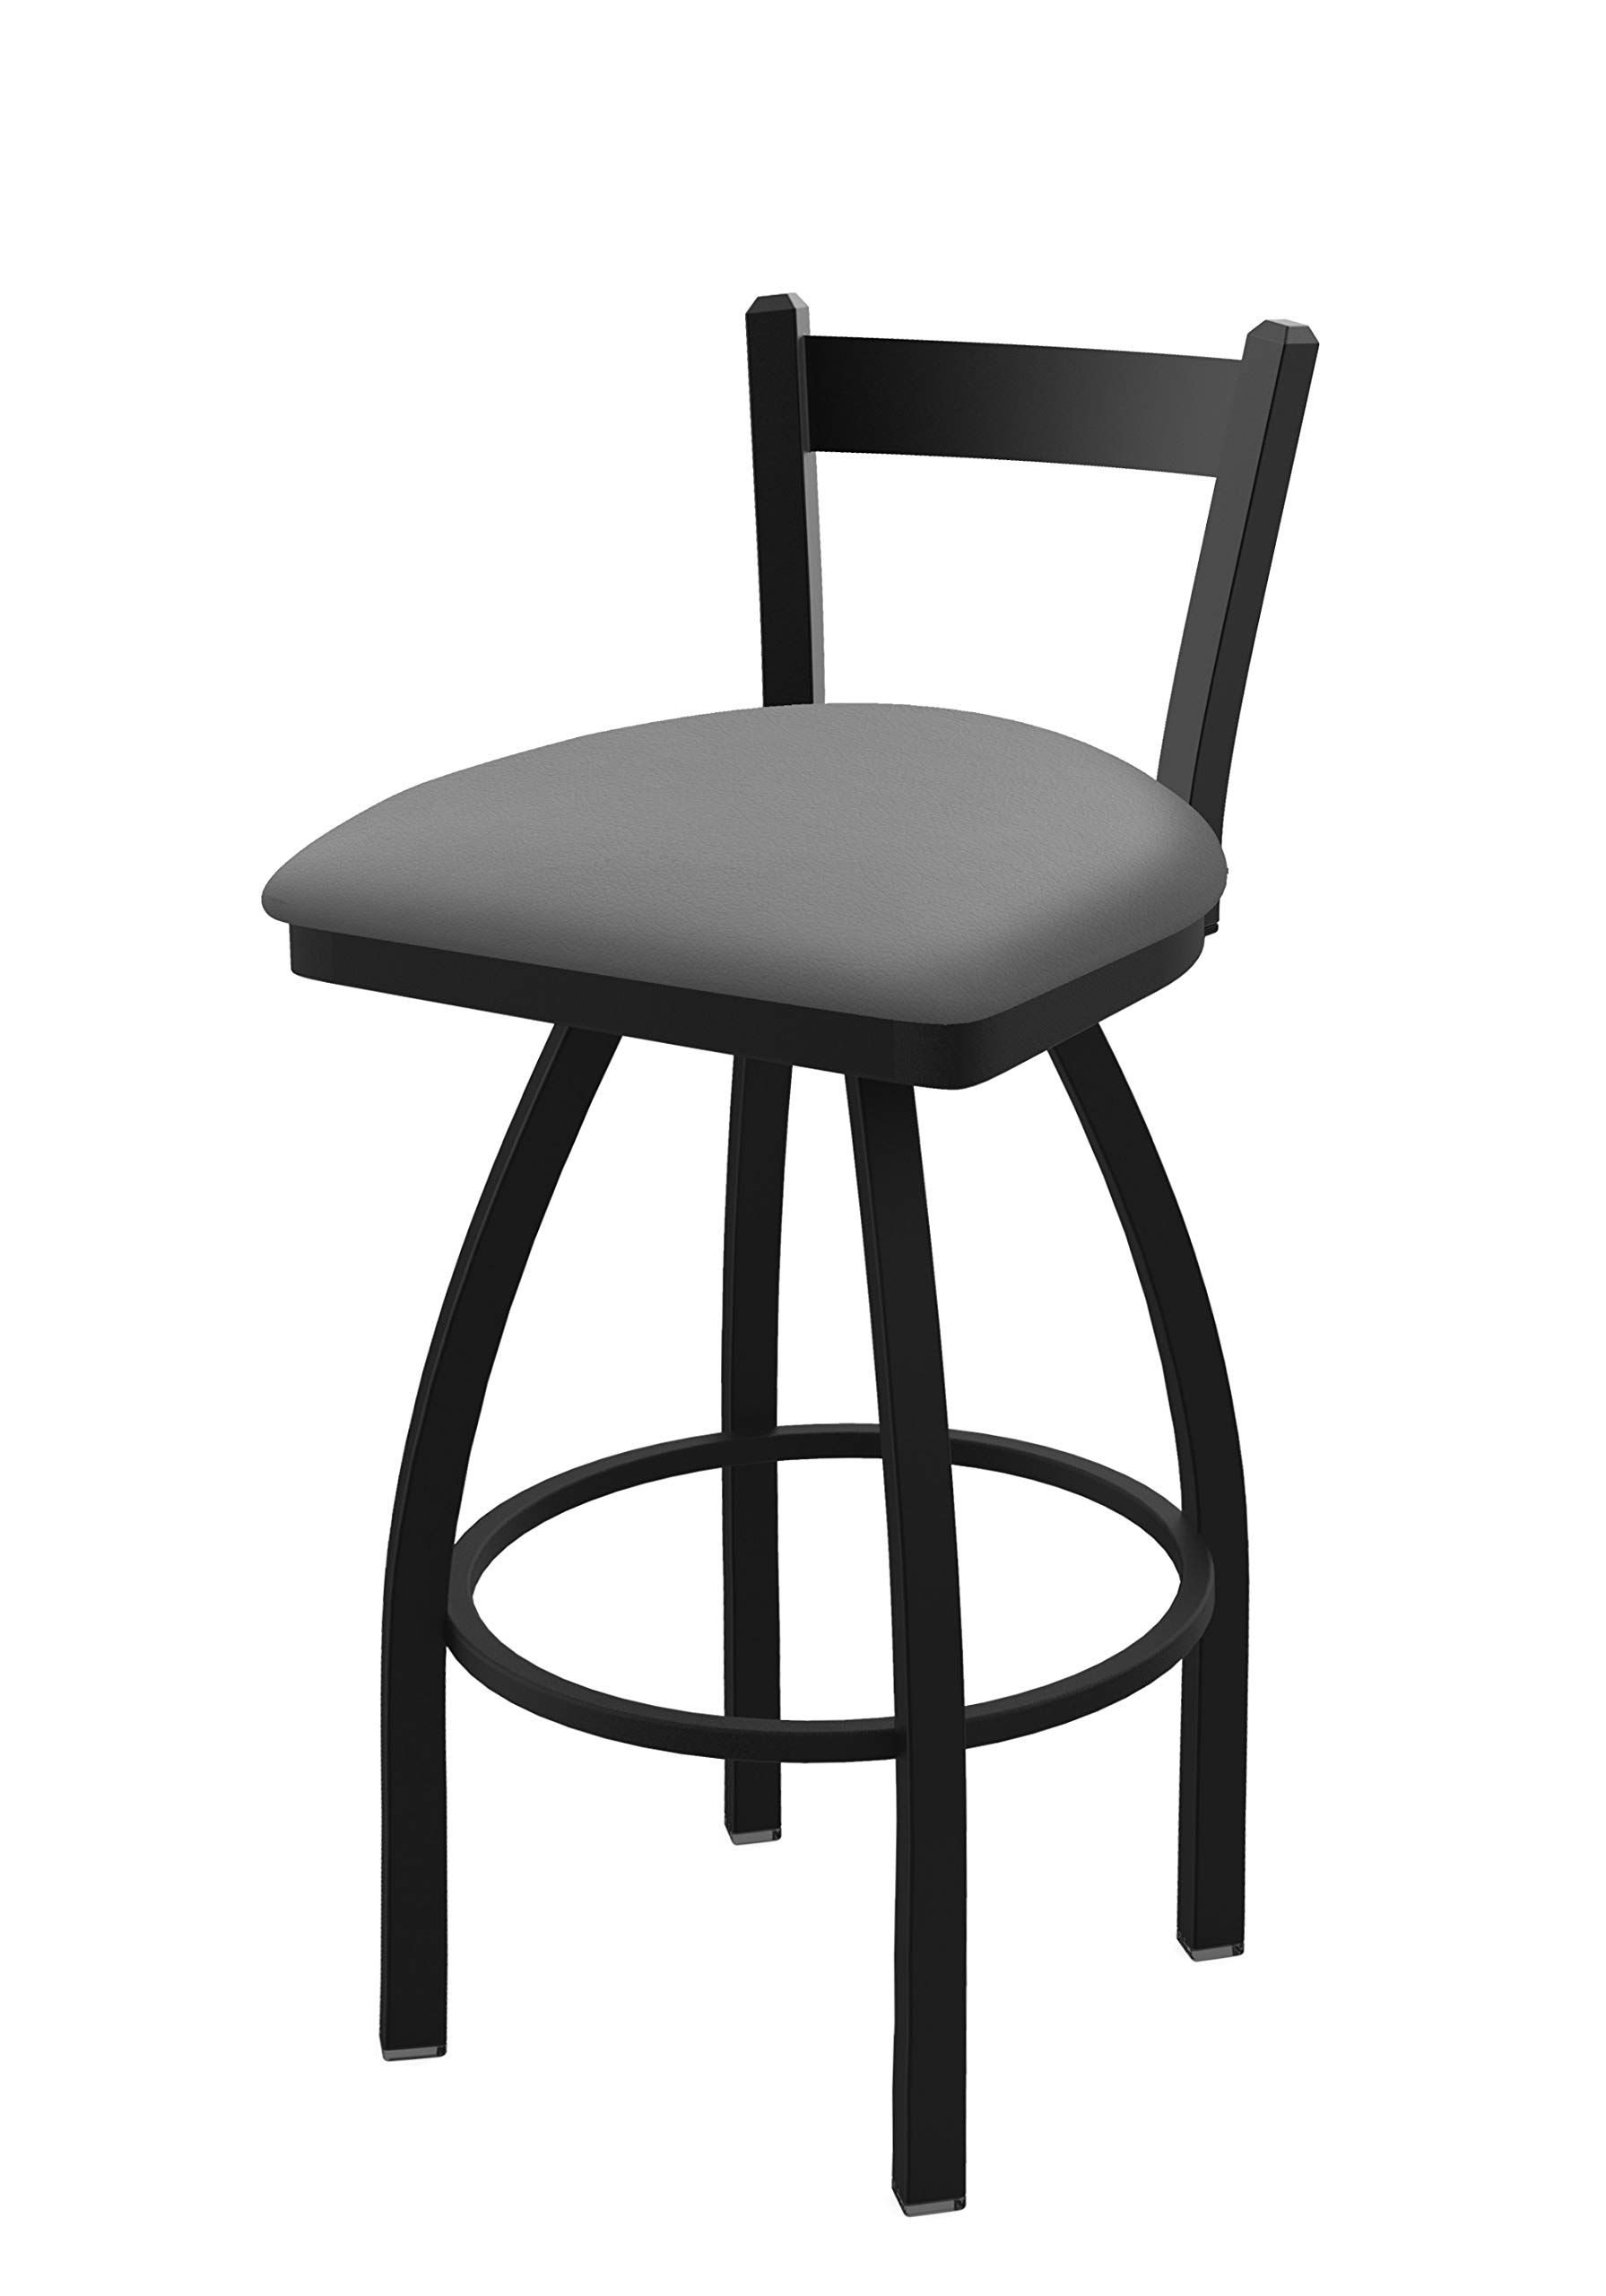 Holland Bar Stool Co. 82125BW007 821 Catalina 25'' Low Back Swivel Counter Black Wrinkle Finish and Canter Folkstone Grey Seat Bar Stool